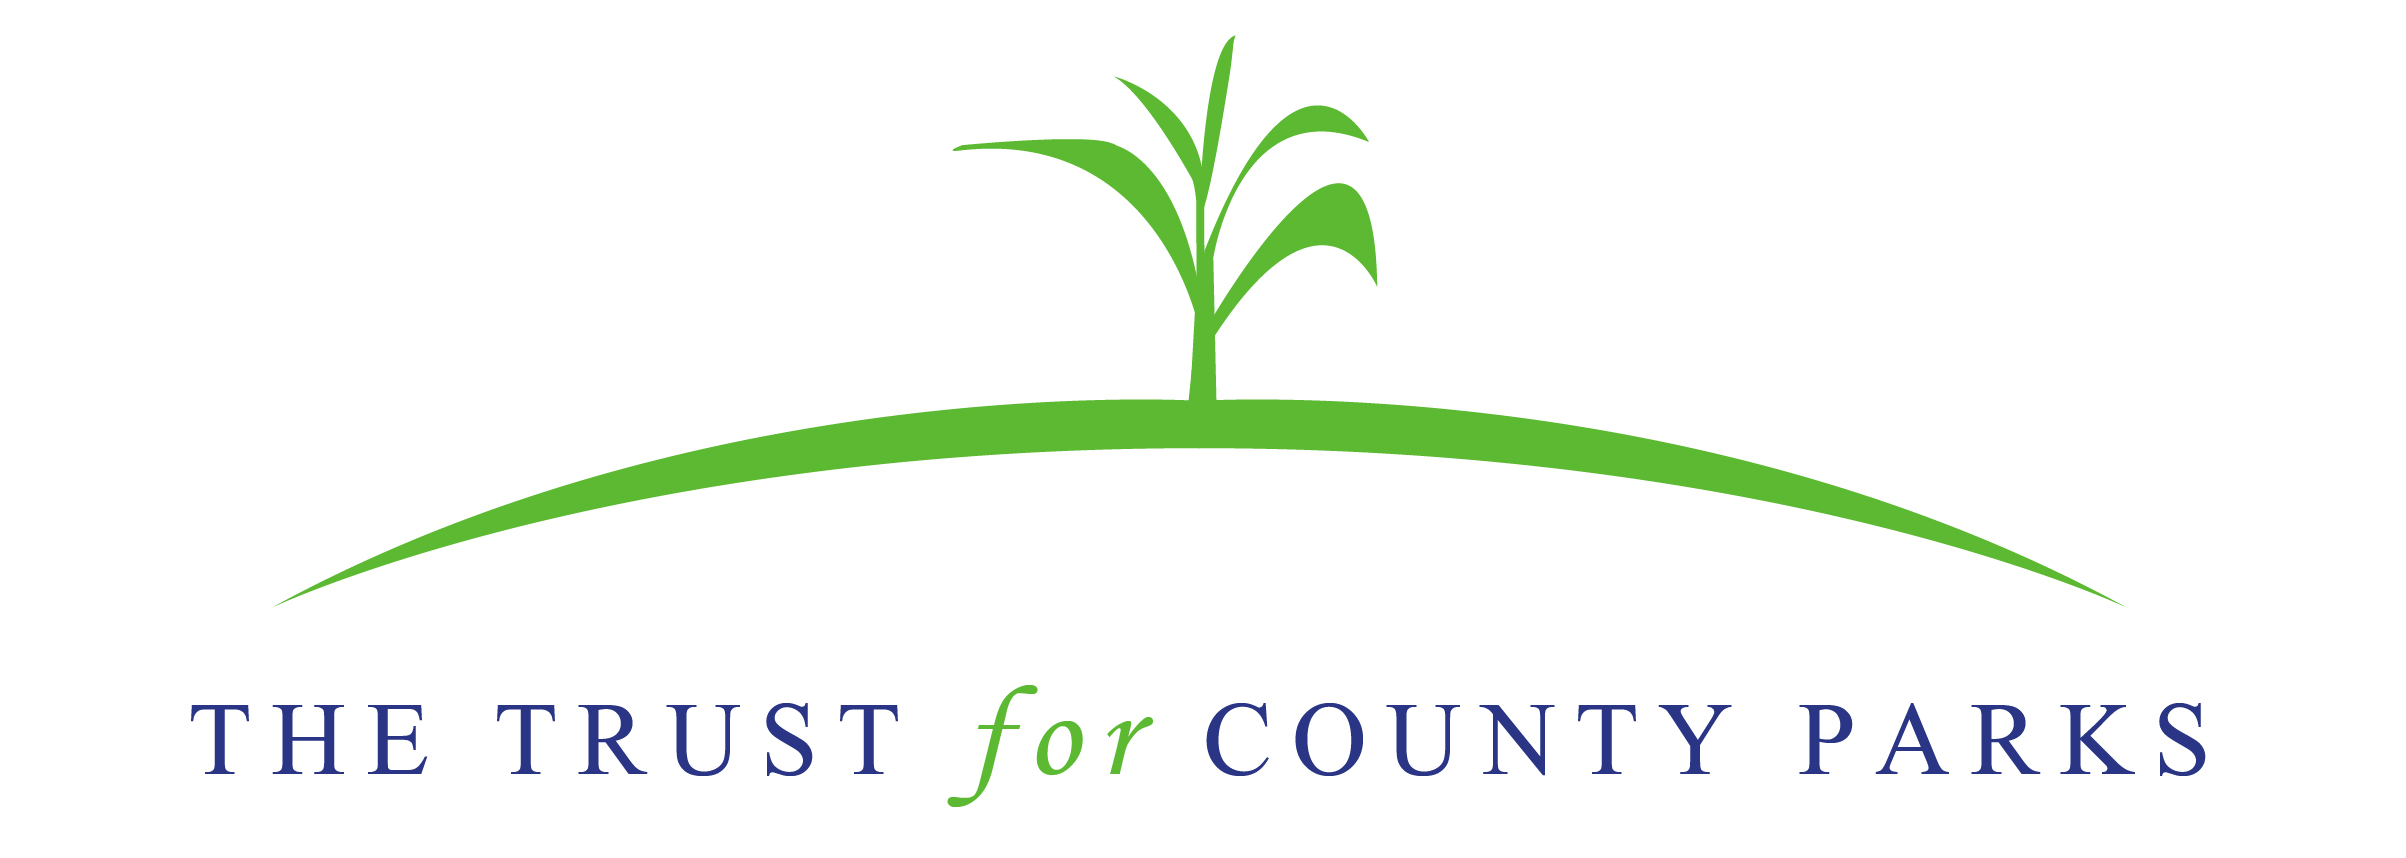 Trust for County Parks Logo